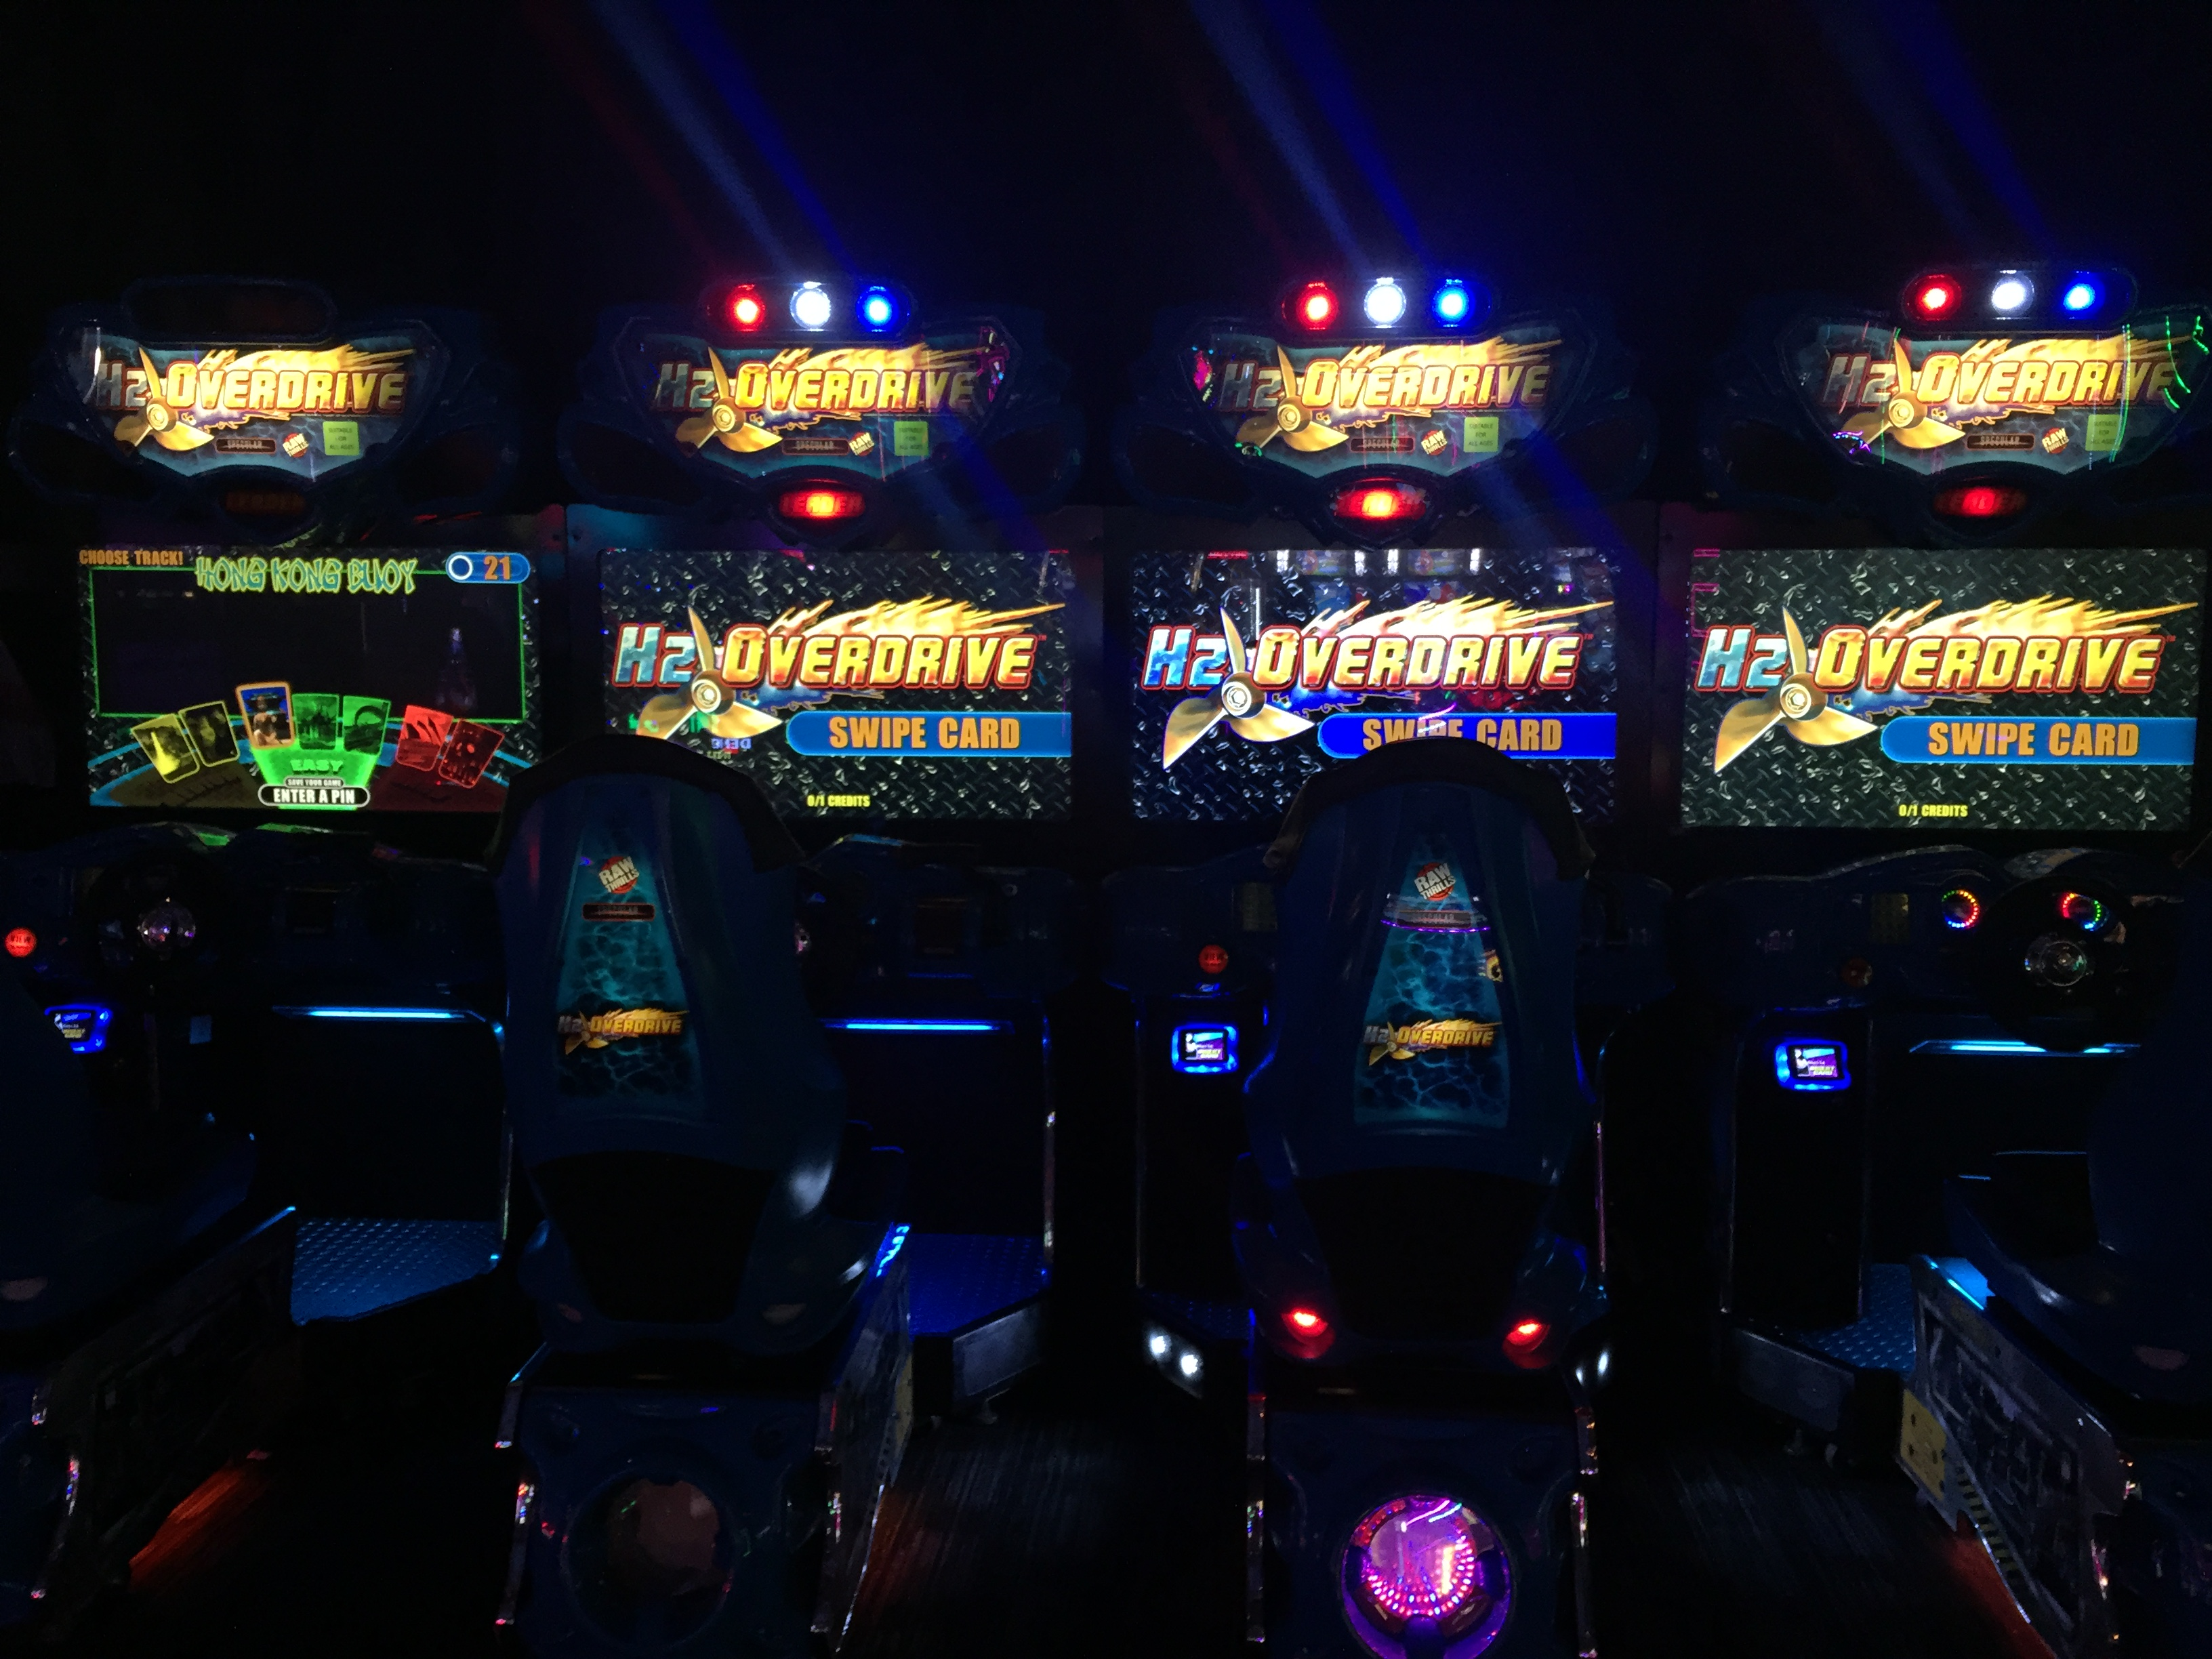 H2overdrive Dave And Buster Santa Anita Arcade Locations